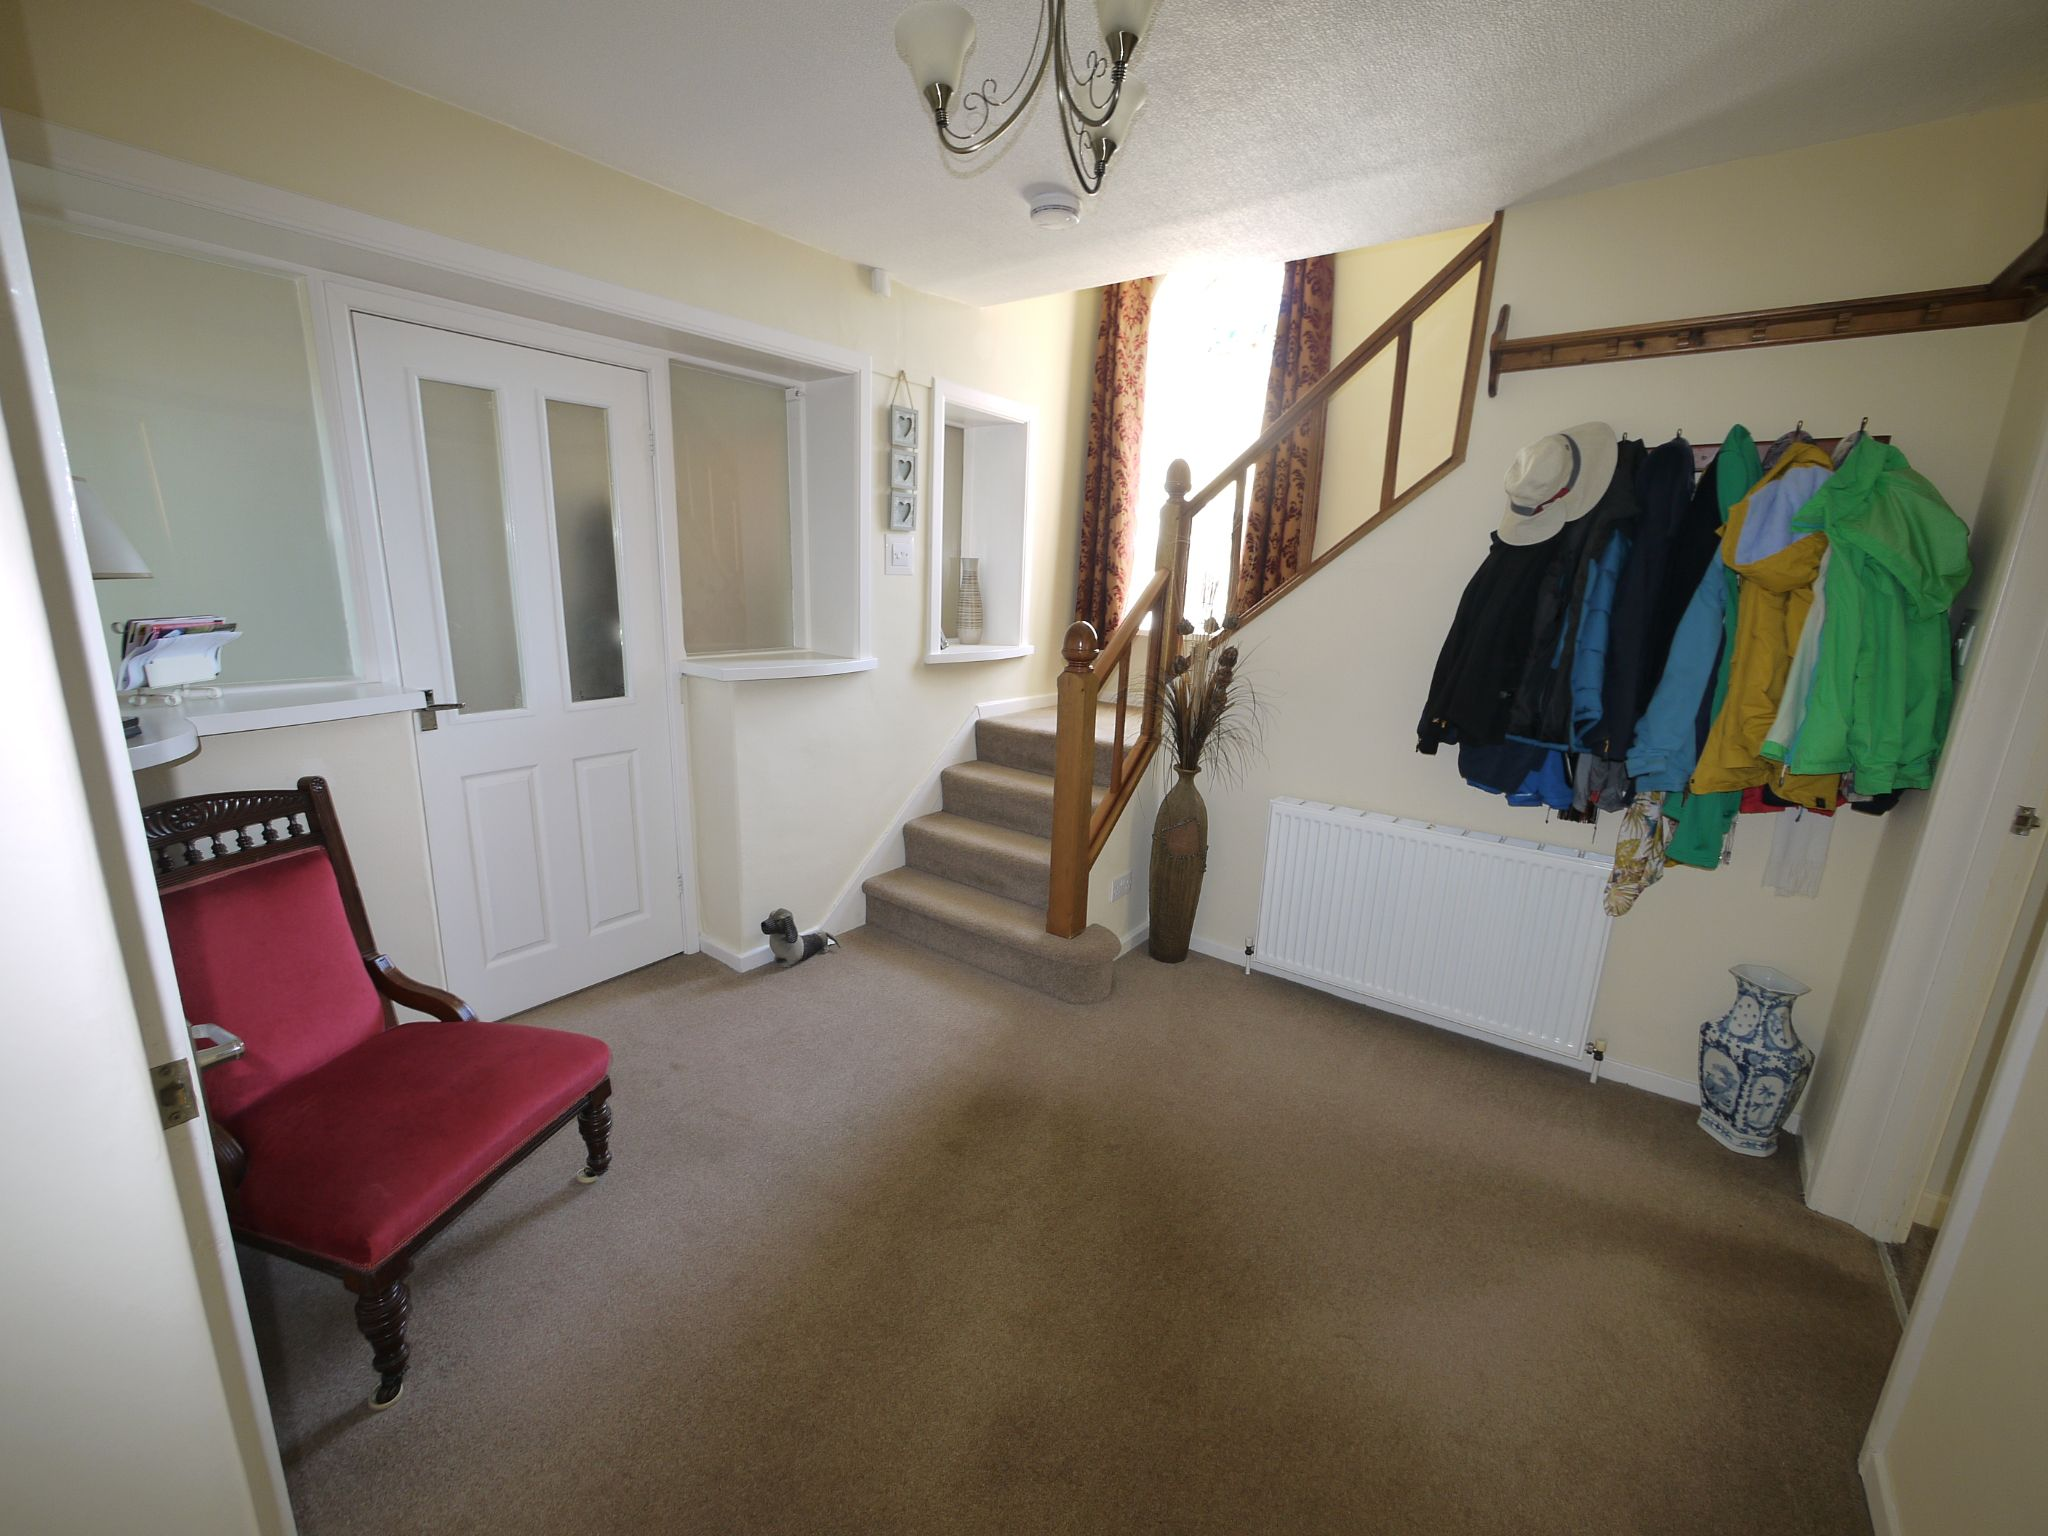 5 bedroom detached house SSTC in Brighouse - Inner Hallway.